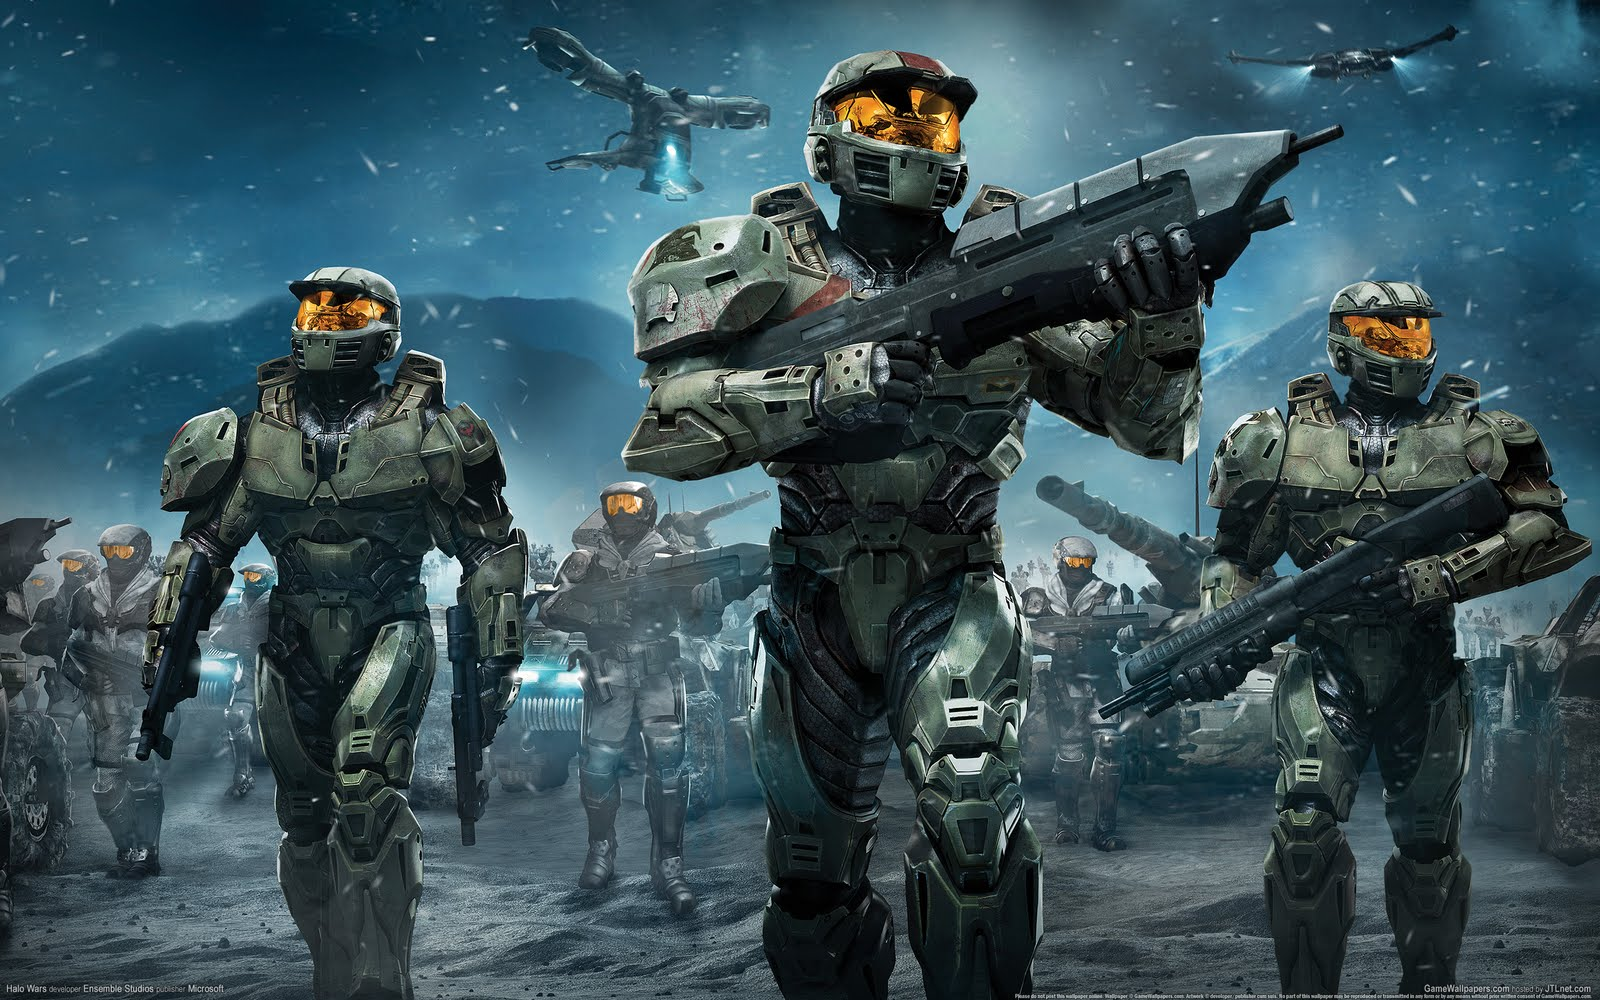 http://3.bp.blogspot.com/-vKSJ85v6fL0/USE3Qv2xoxI/AAAAAAAAABE/h-yg79xl0jg/s1600/halo-4-master-chief-wallpaper-i12.jpg